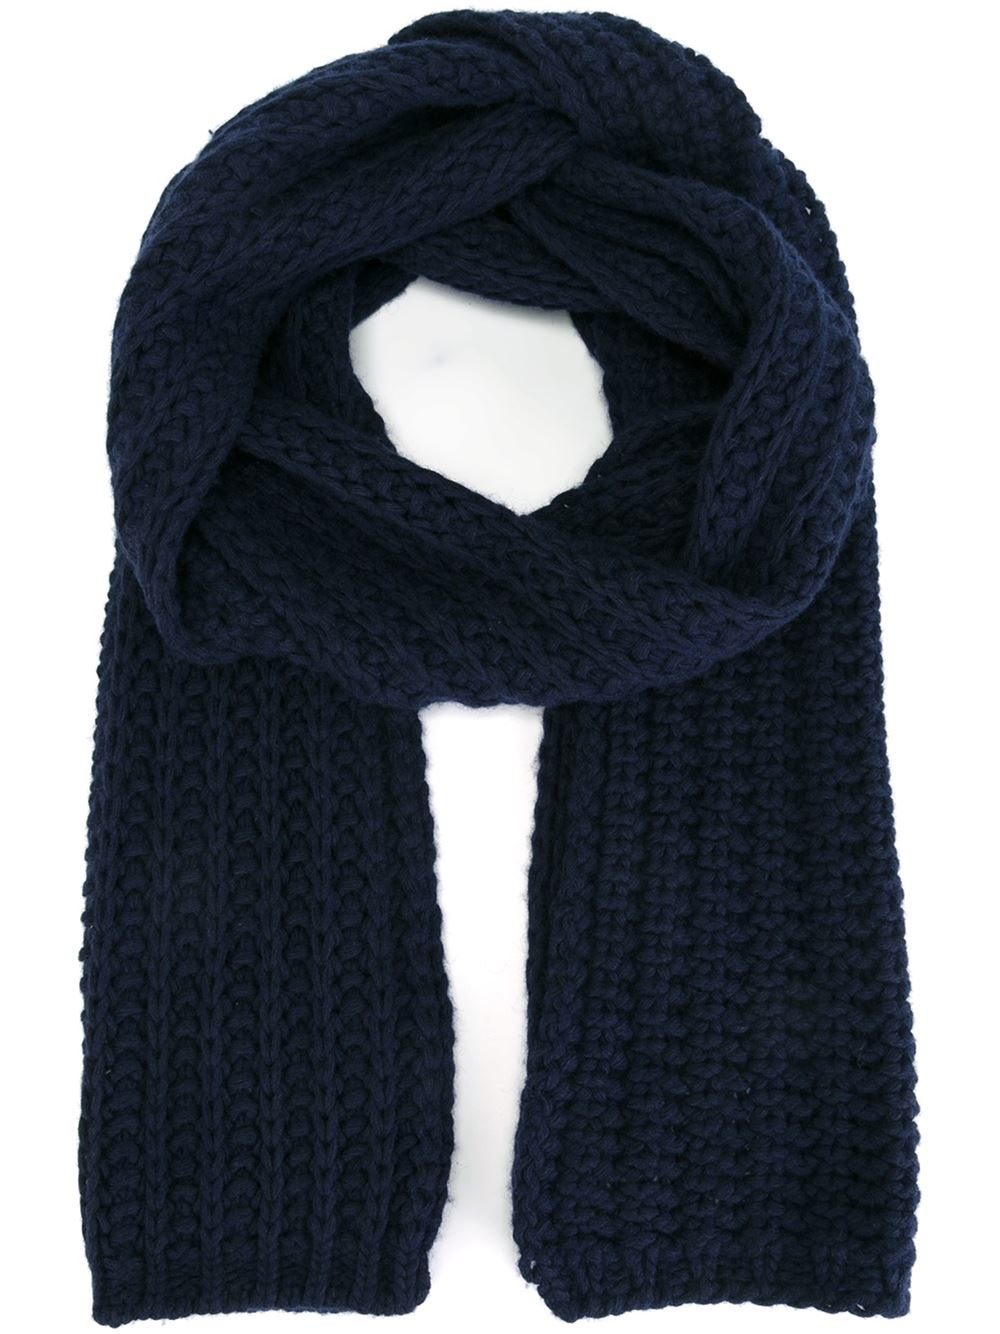 Knitting Chunky Scarves : Moncler chunky knit scarf in blue lyst